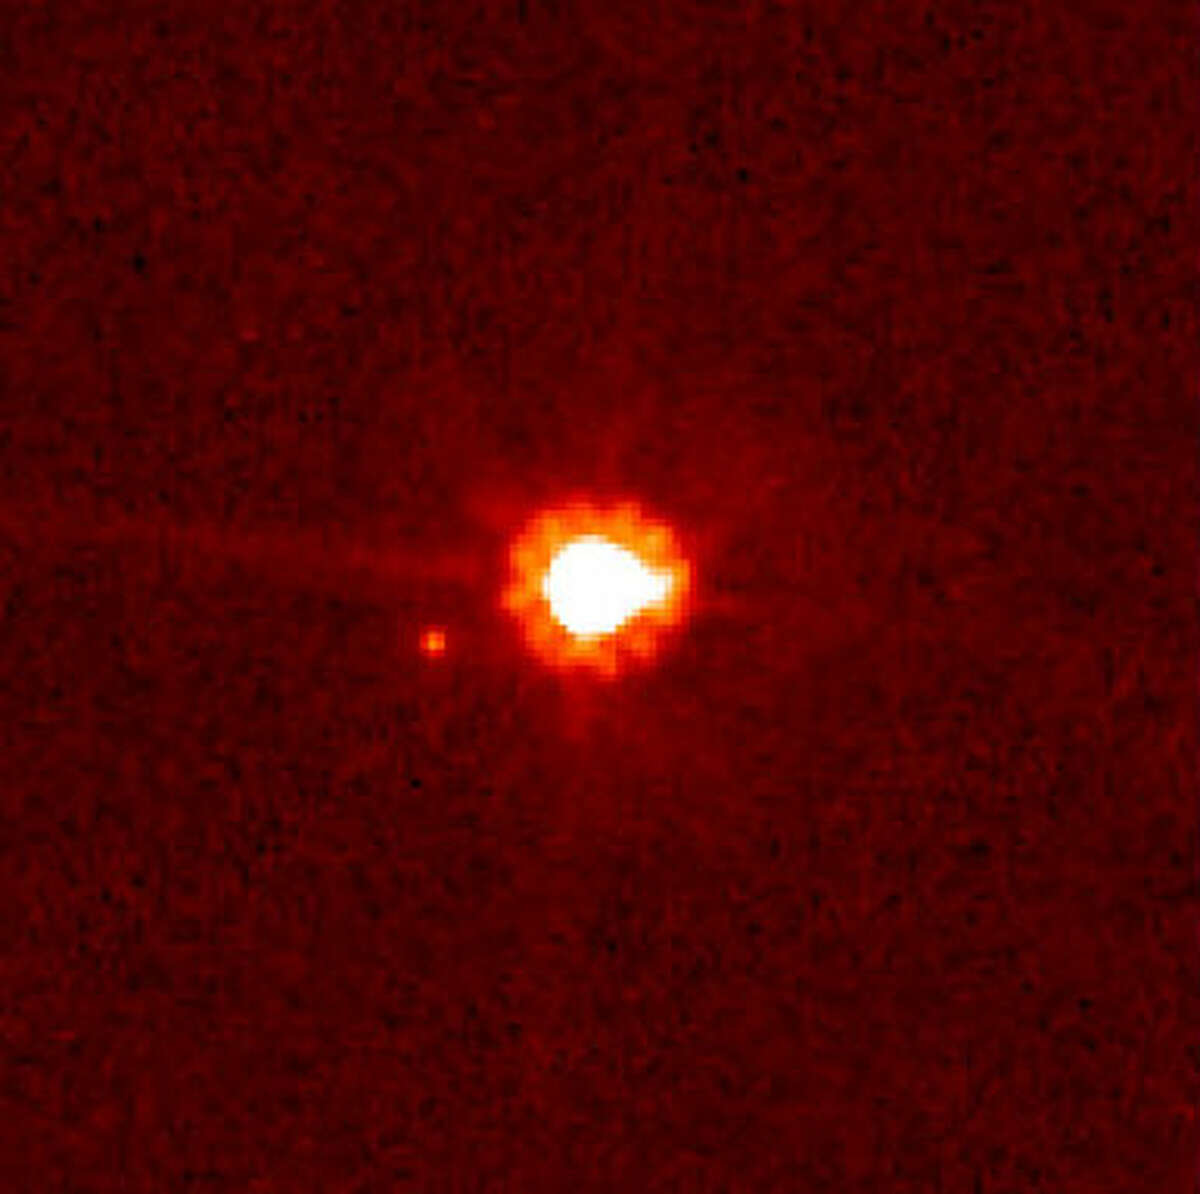 Eris (center) and Dysnomia (left of center), taken by the Hubble Space Telescope. Eric is the largest dwarf planet discovered so far at 2,330 km in diameter.